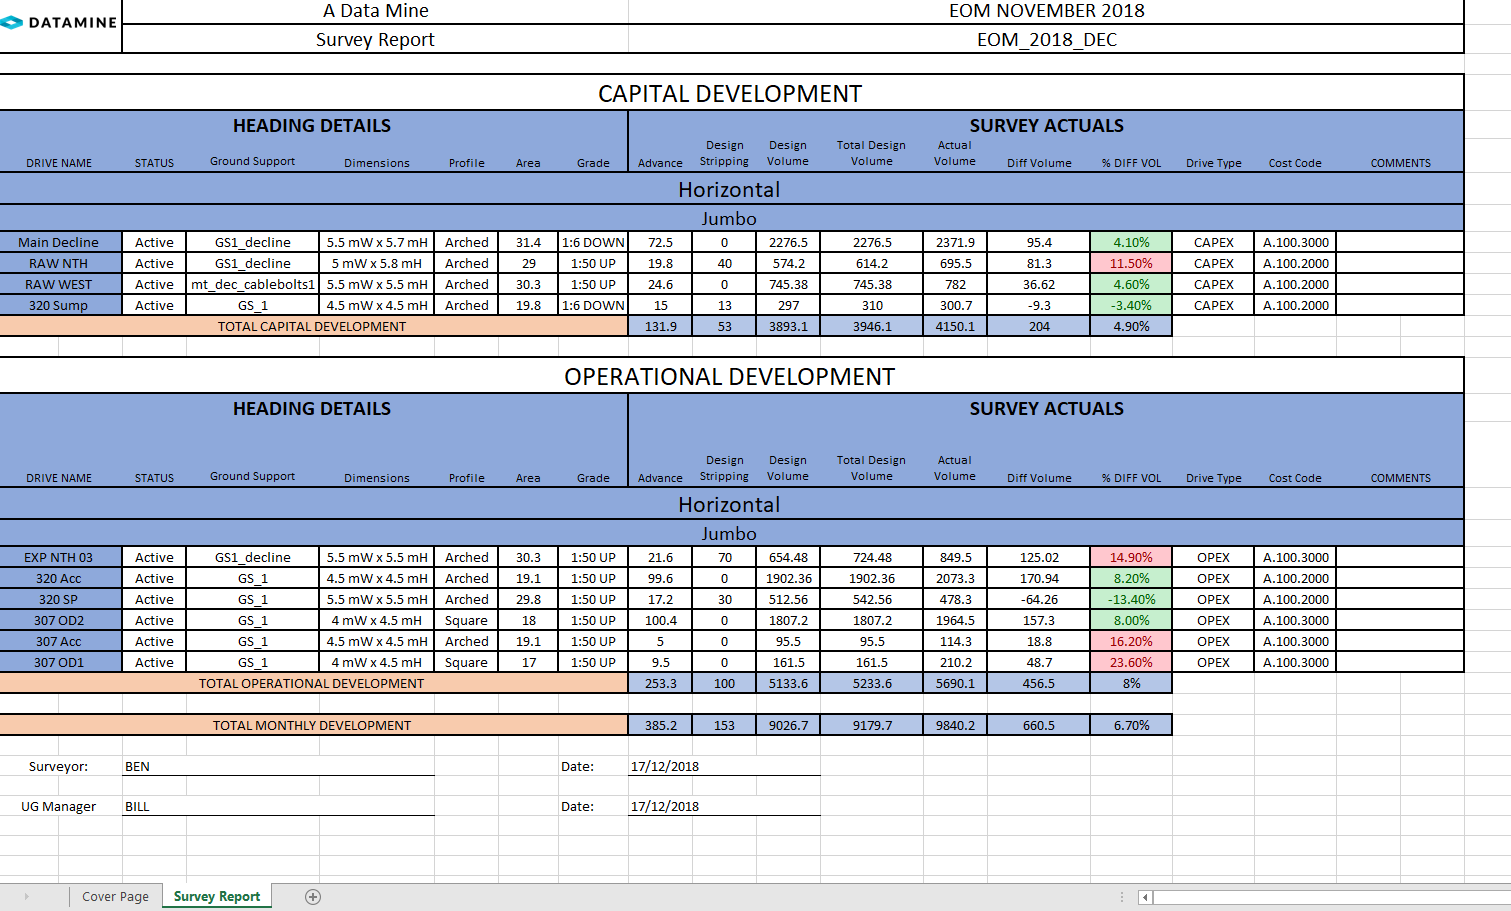 EOM report generated in Amine showing capital development and operational development